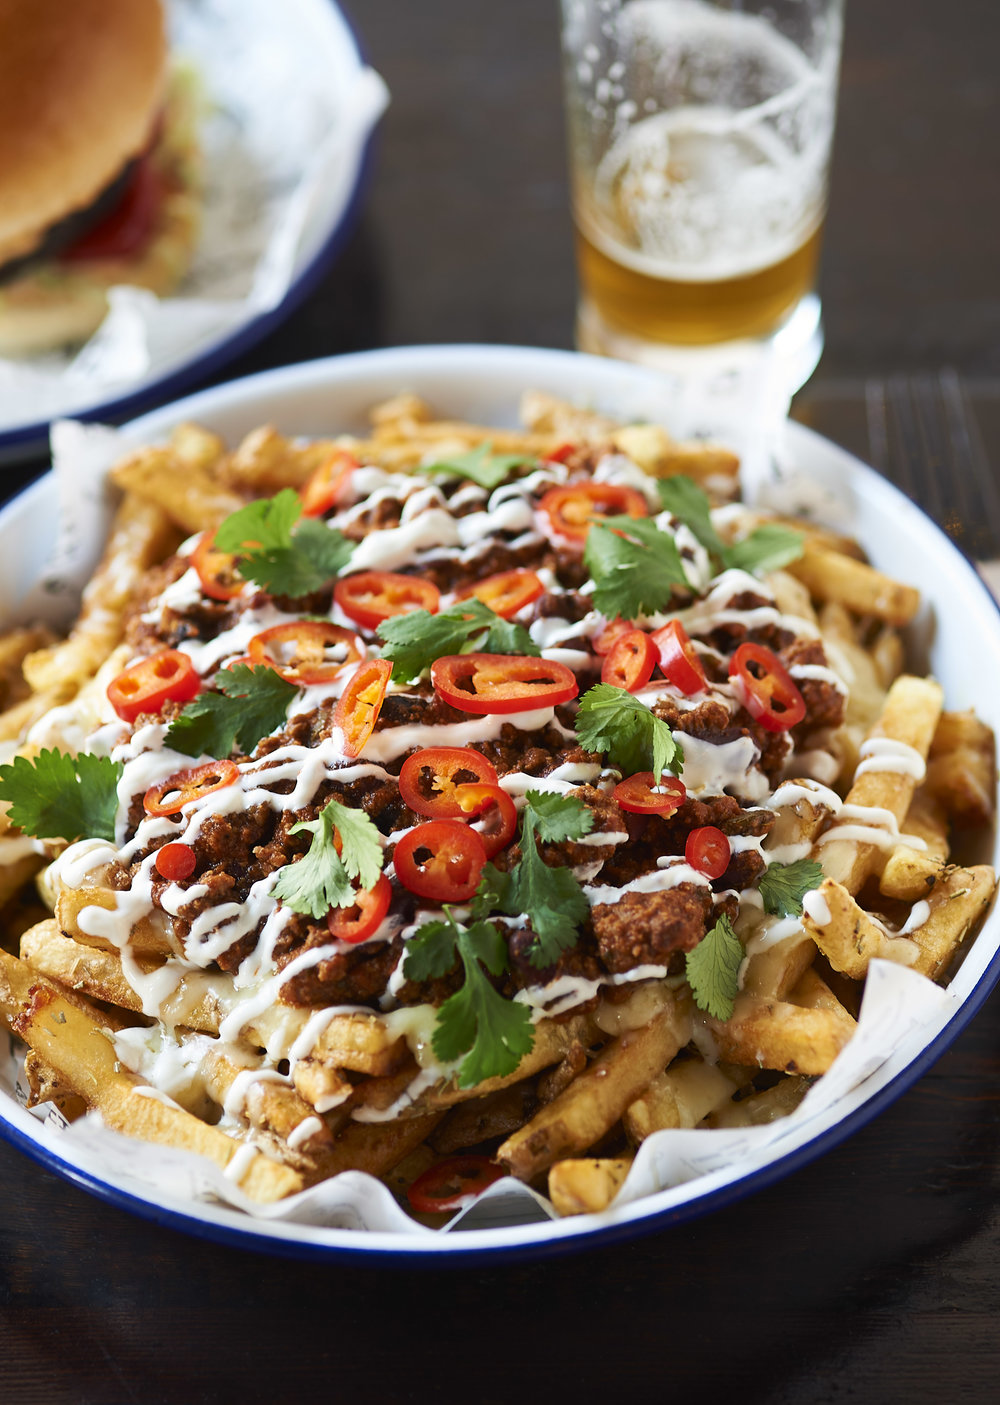 HMHB_chilli_cheese_fries_©stevepainter_186 1.jpg